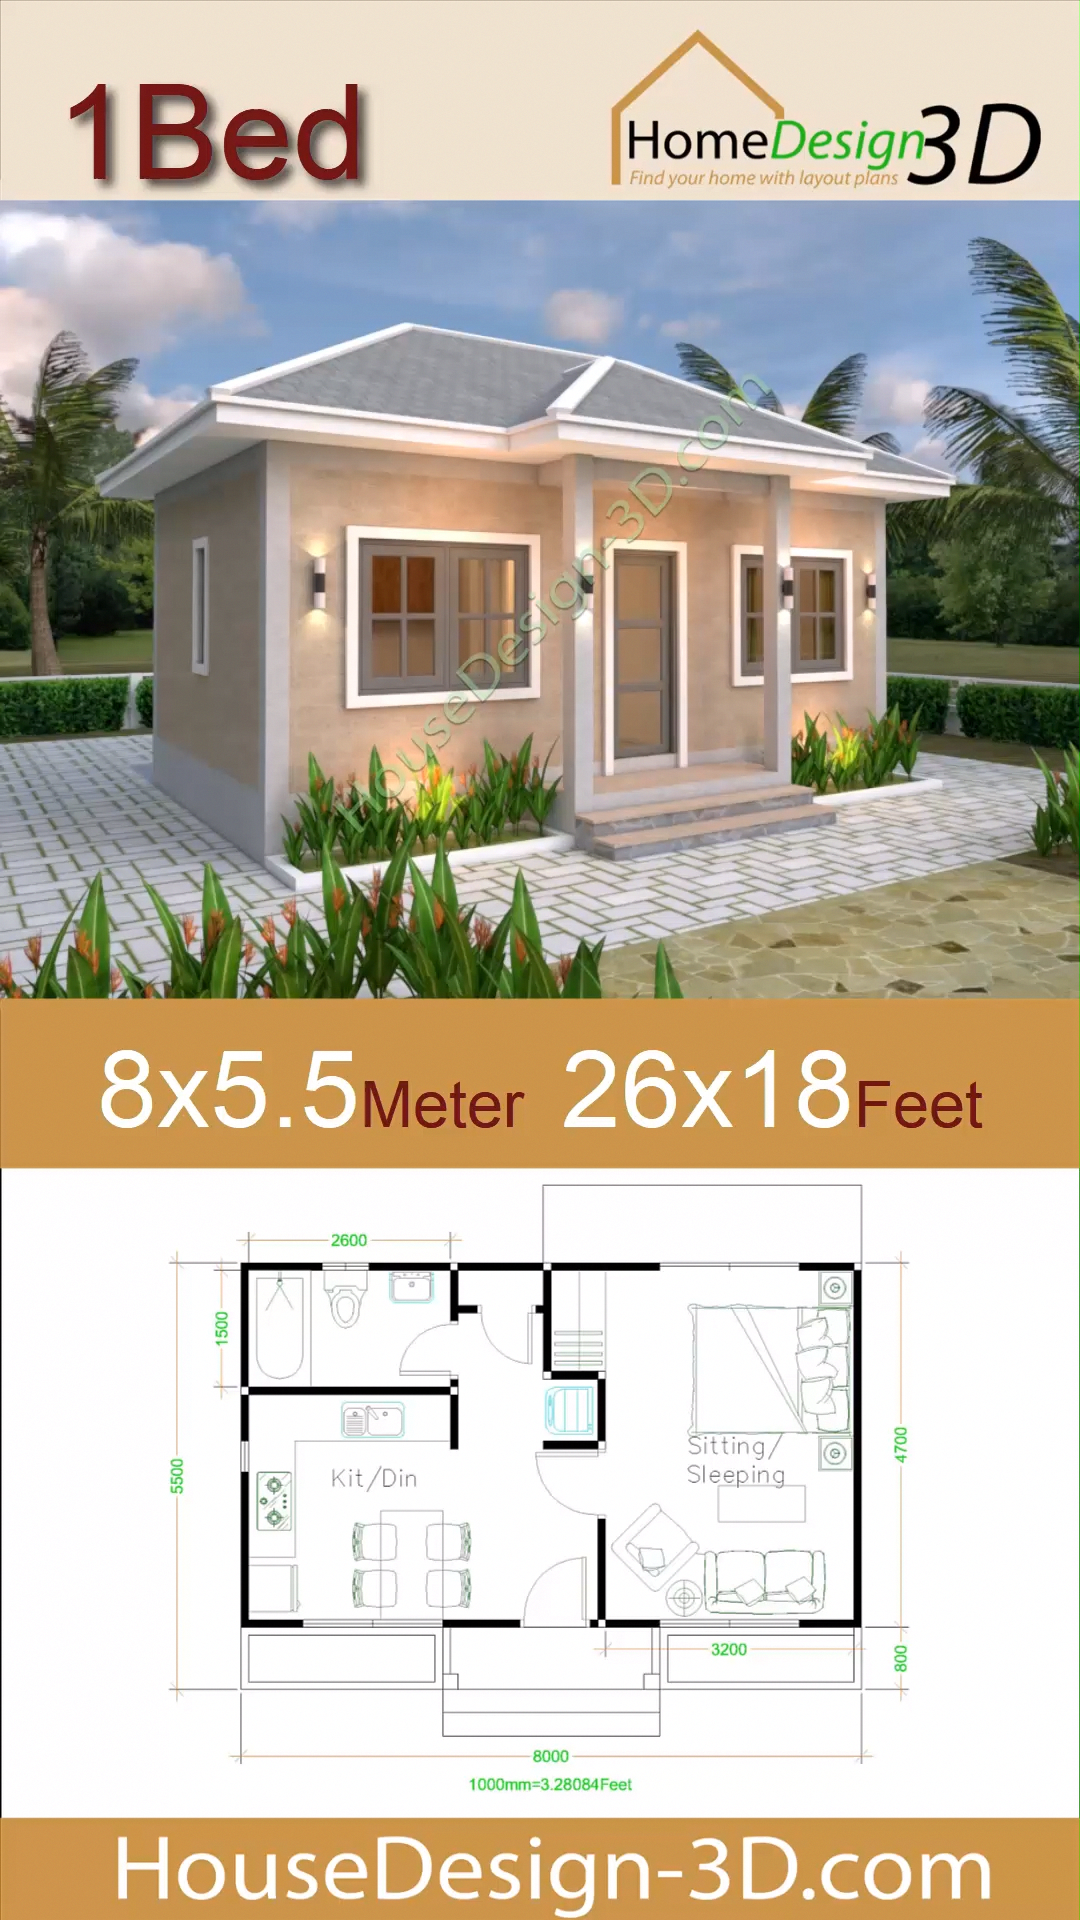 Small House Plans 8x5 5 With One Bedrooms Gross Hipped Roof In 2020 Small House Design House Plans Beach House Interior Design